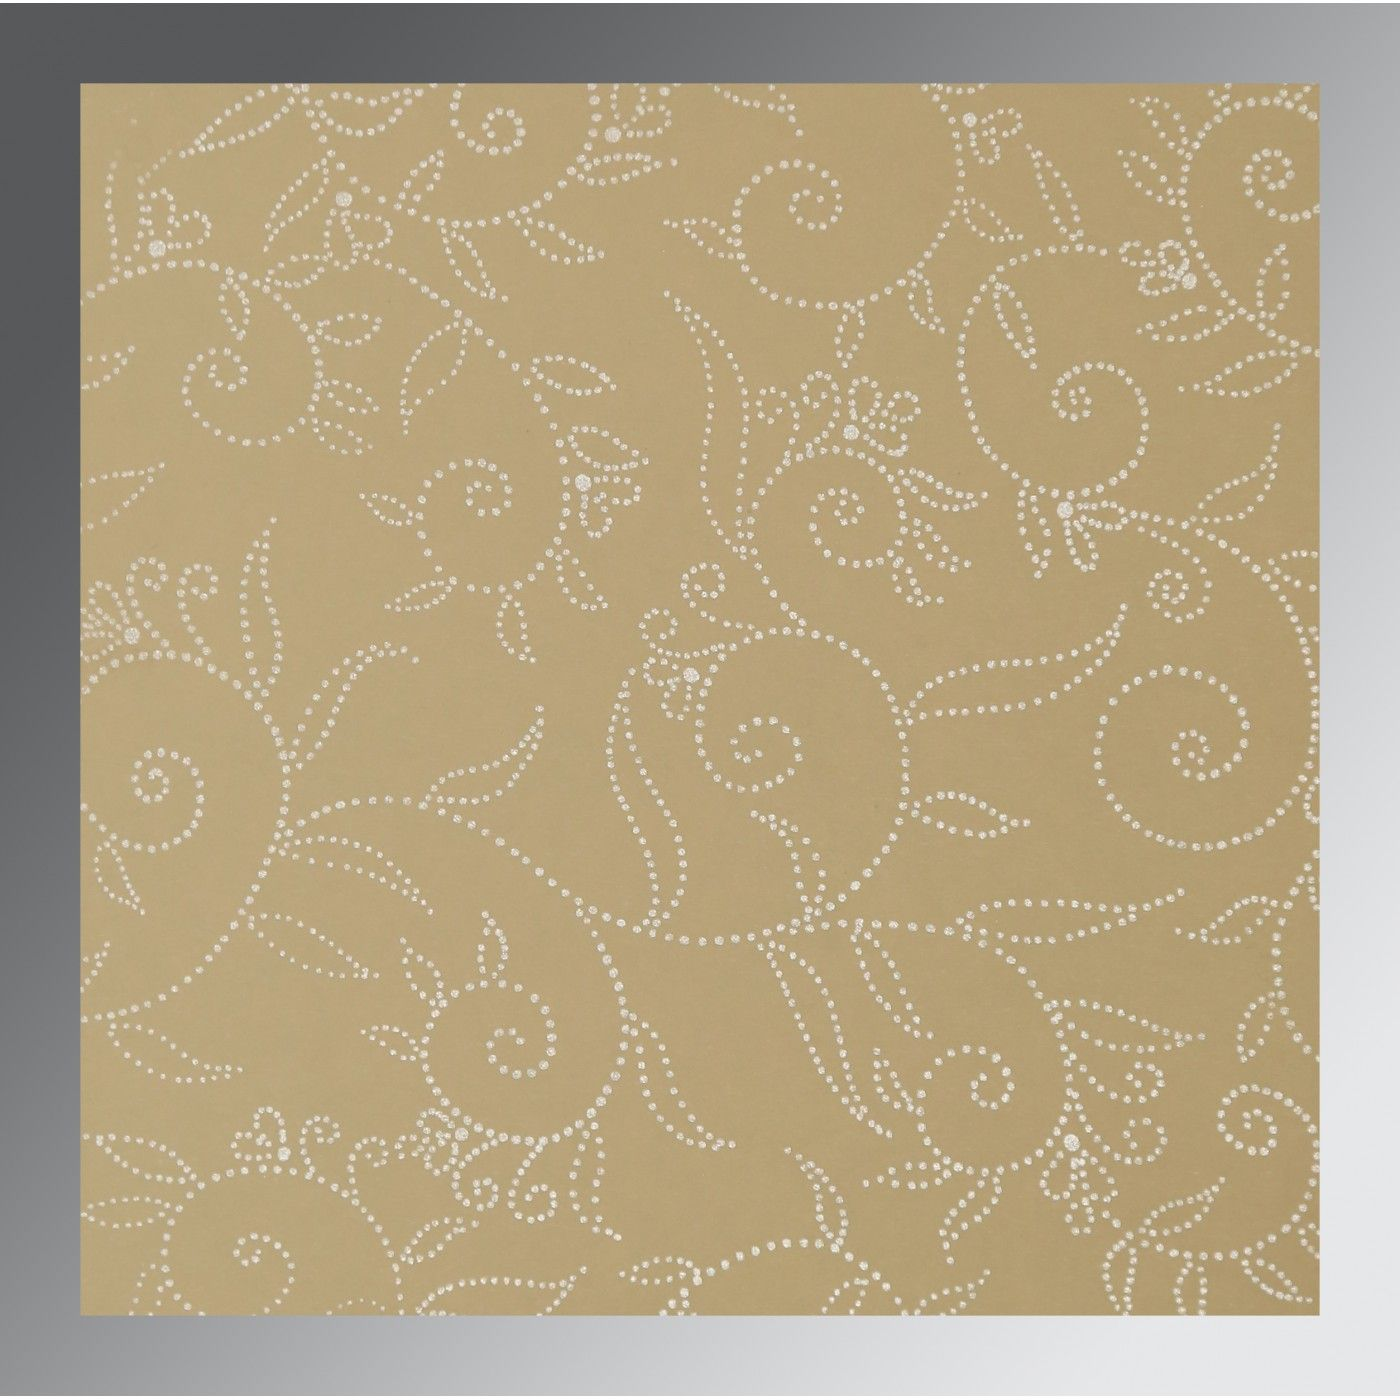 BEIGE BROWN SHIMMERY SCREEN PRINTED WEDDING INVITATION : CW-1447 - IndianWeddingCards